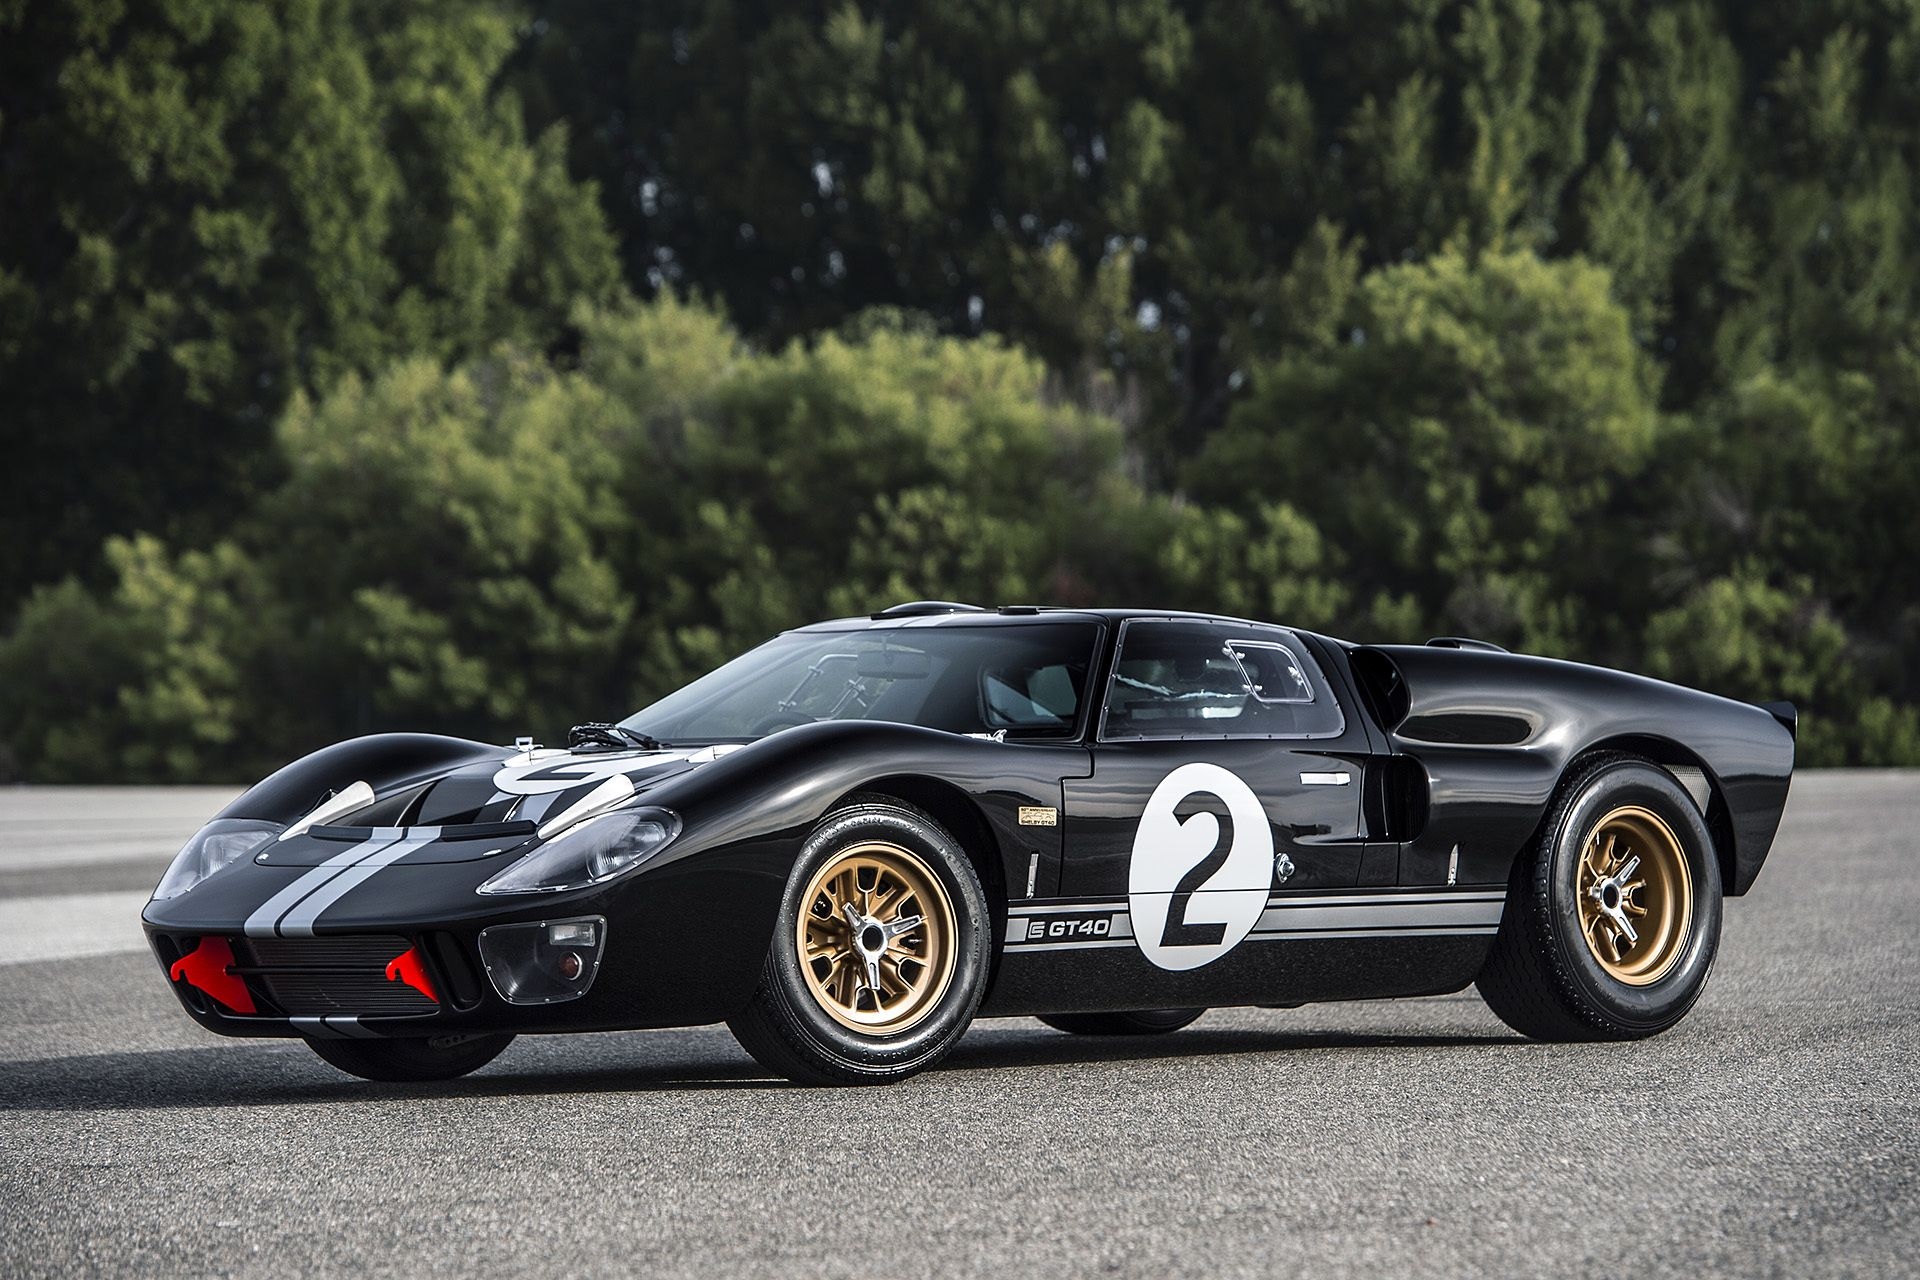 Superformance S 50th Anniversary Gt40 To Debut At Barrett Jackson Ford Gt40 Ford Gt Le Mans